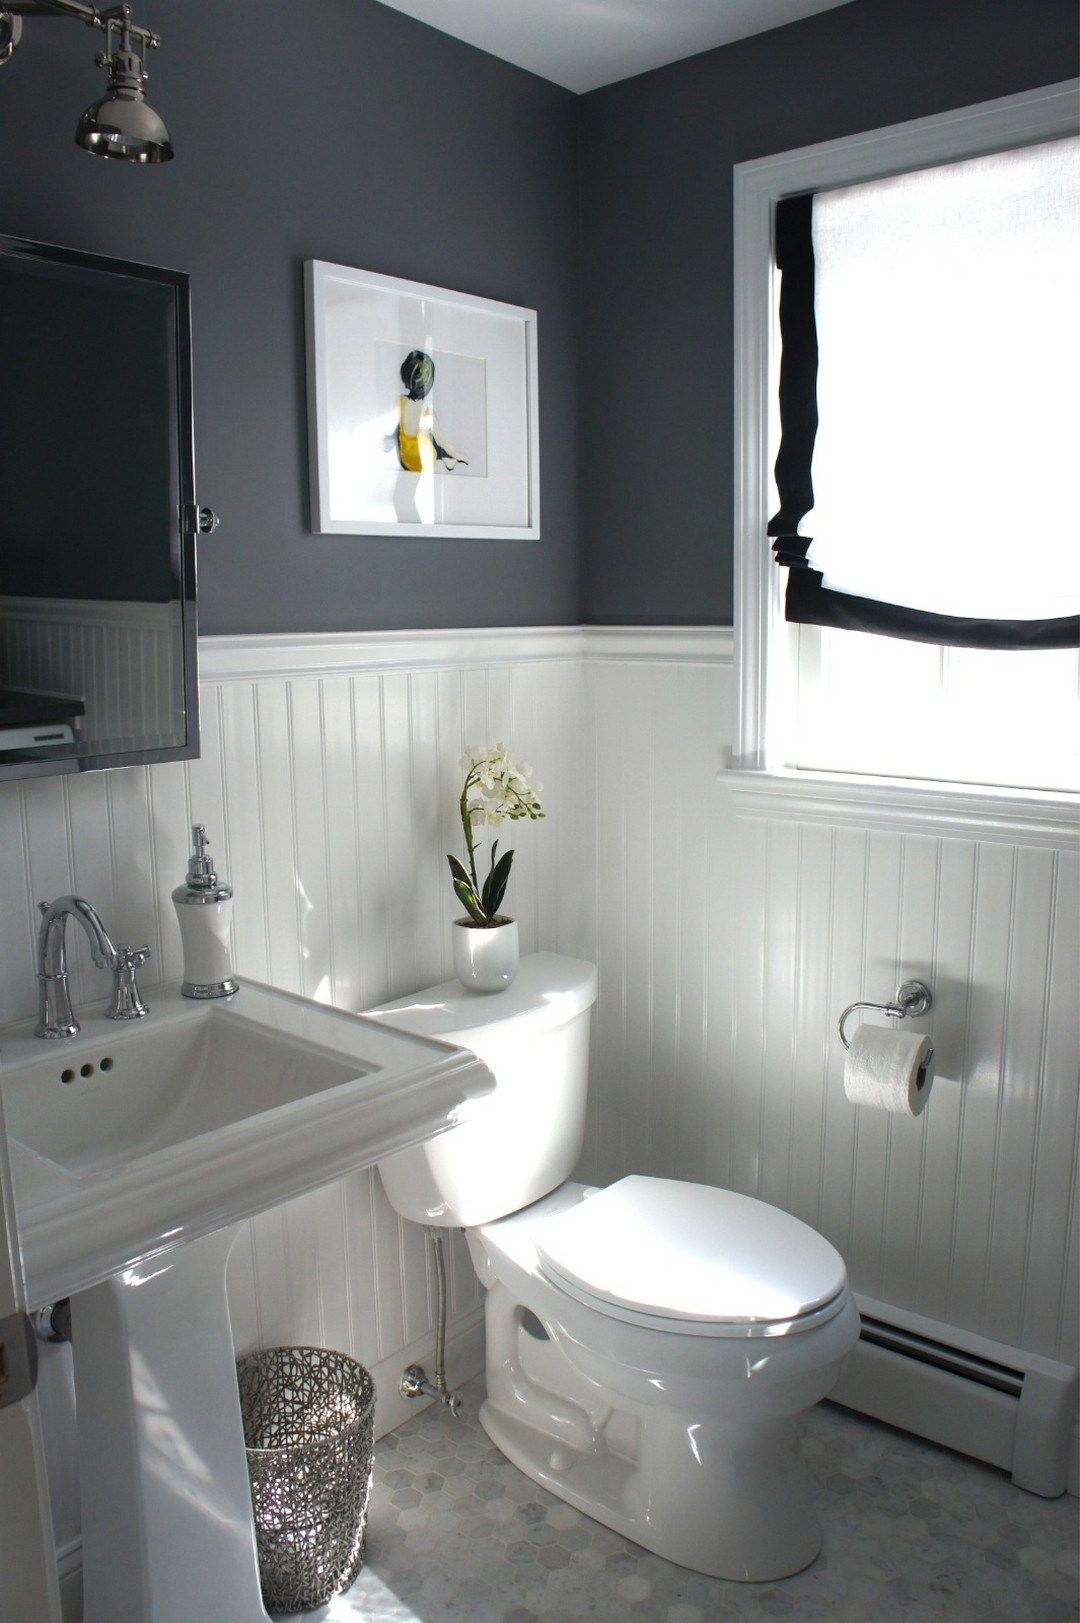 99 small master bathroom makeover ideas on a budget 48 for Little bathroom